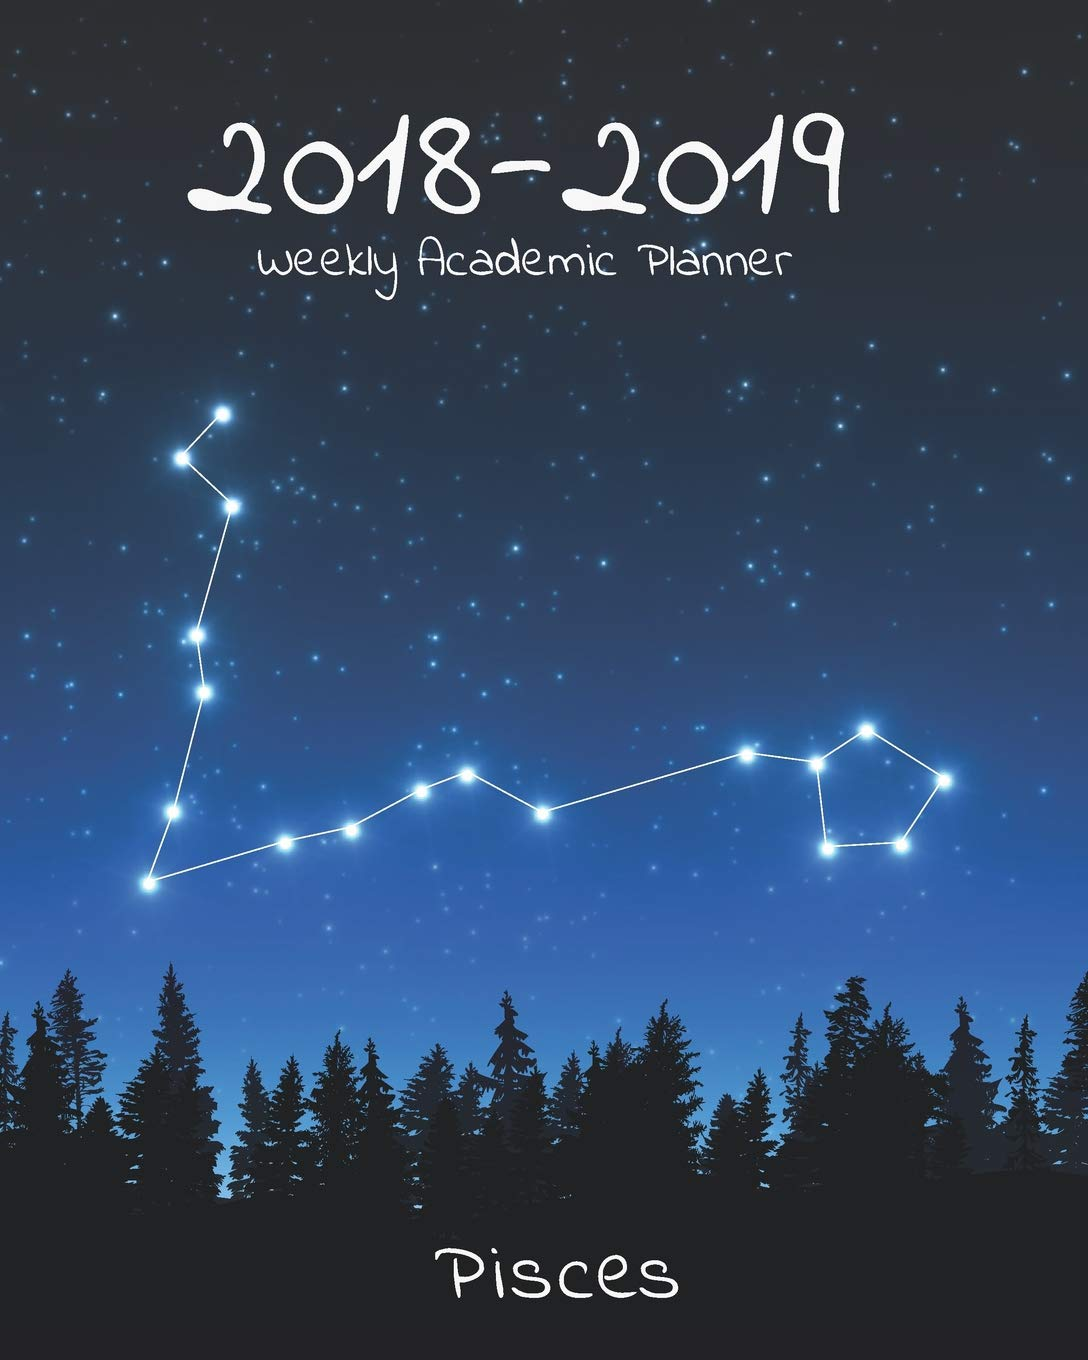 Constellation names and zodiac signs